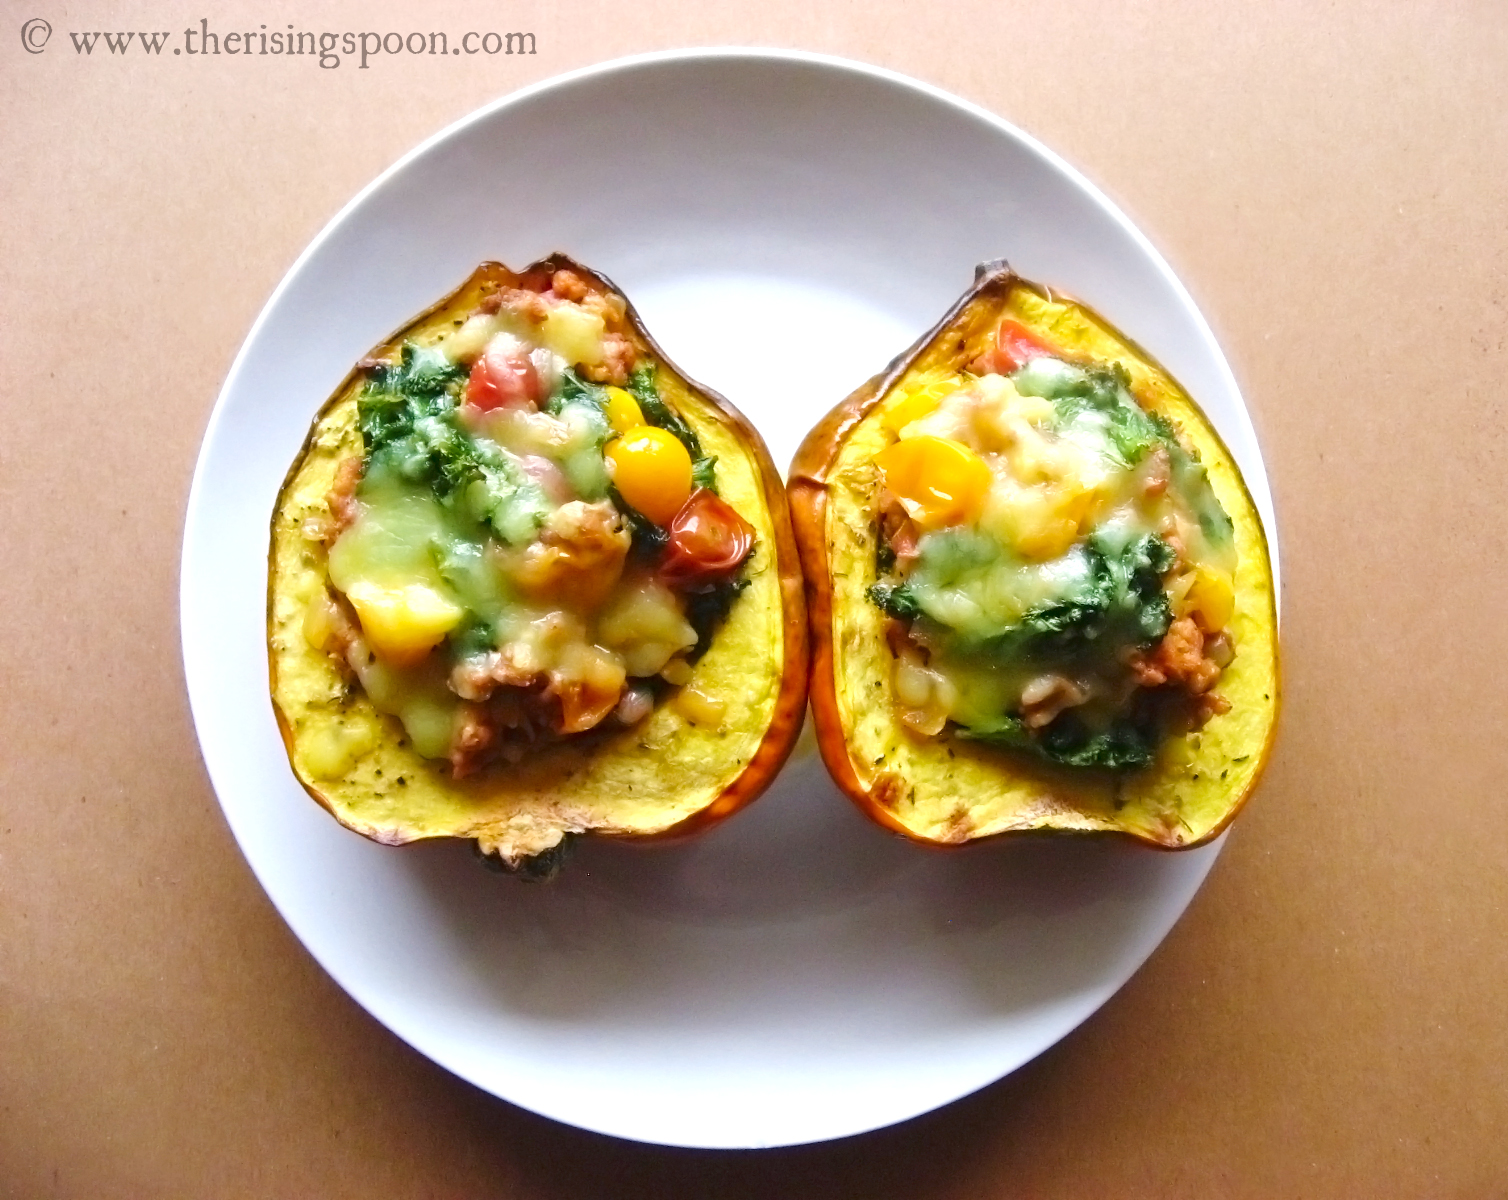 sausage stuffed acorn squash 1, guest post by The Rising Spoon